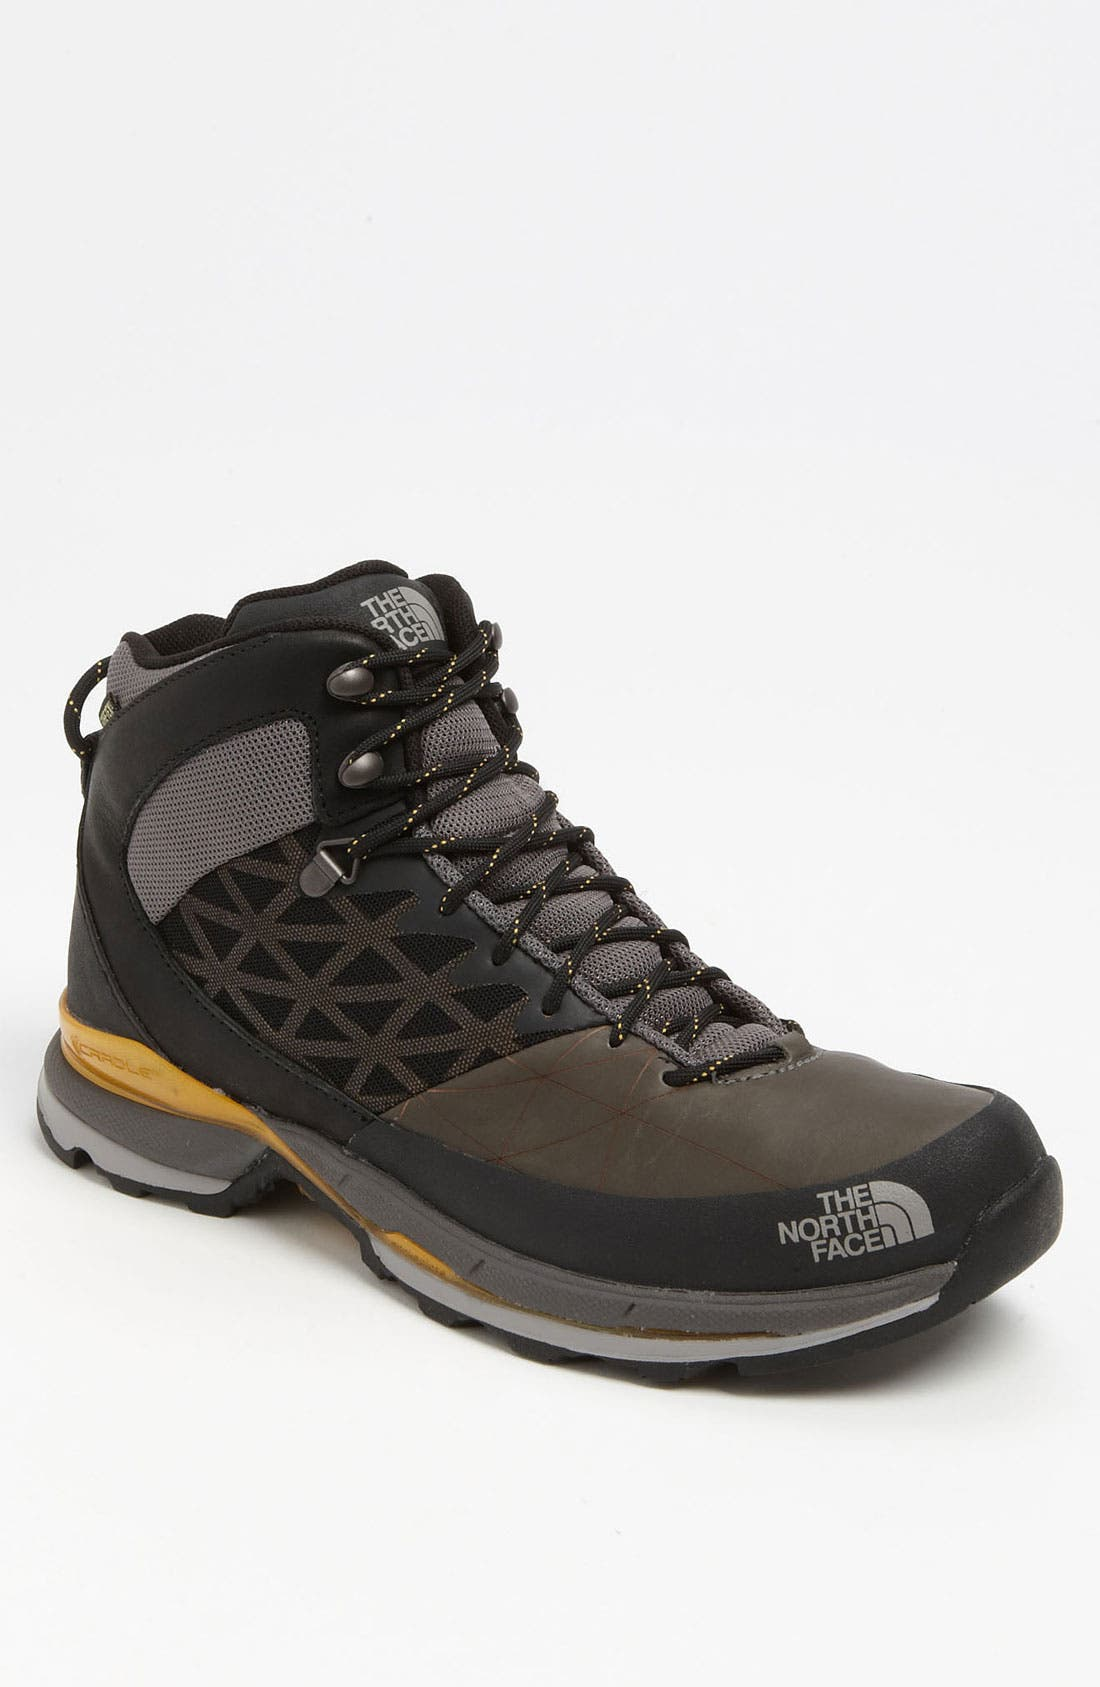 Main Image - The North Face 'Havoc Mid' Hiking Boot